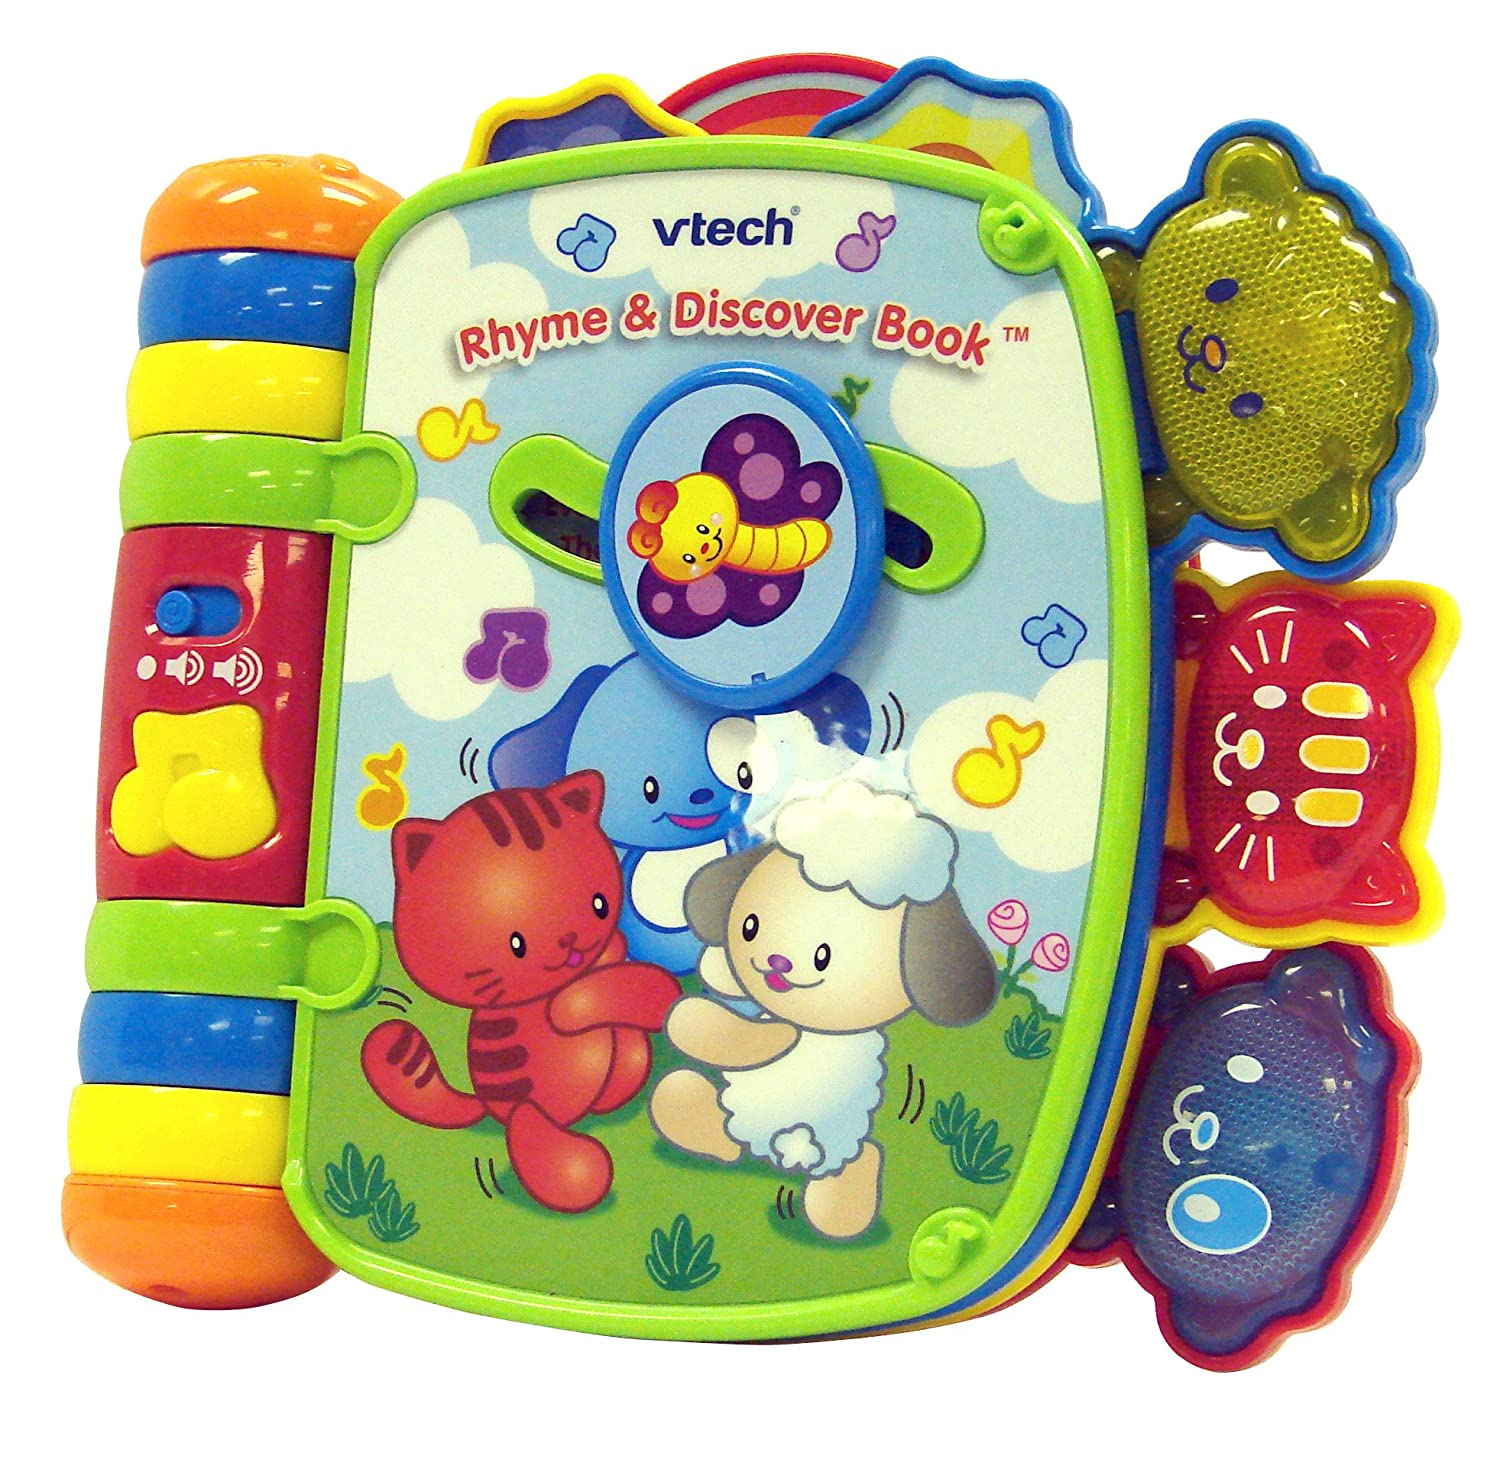 Age-appropriate toy for a 6-month old baby